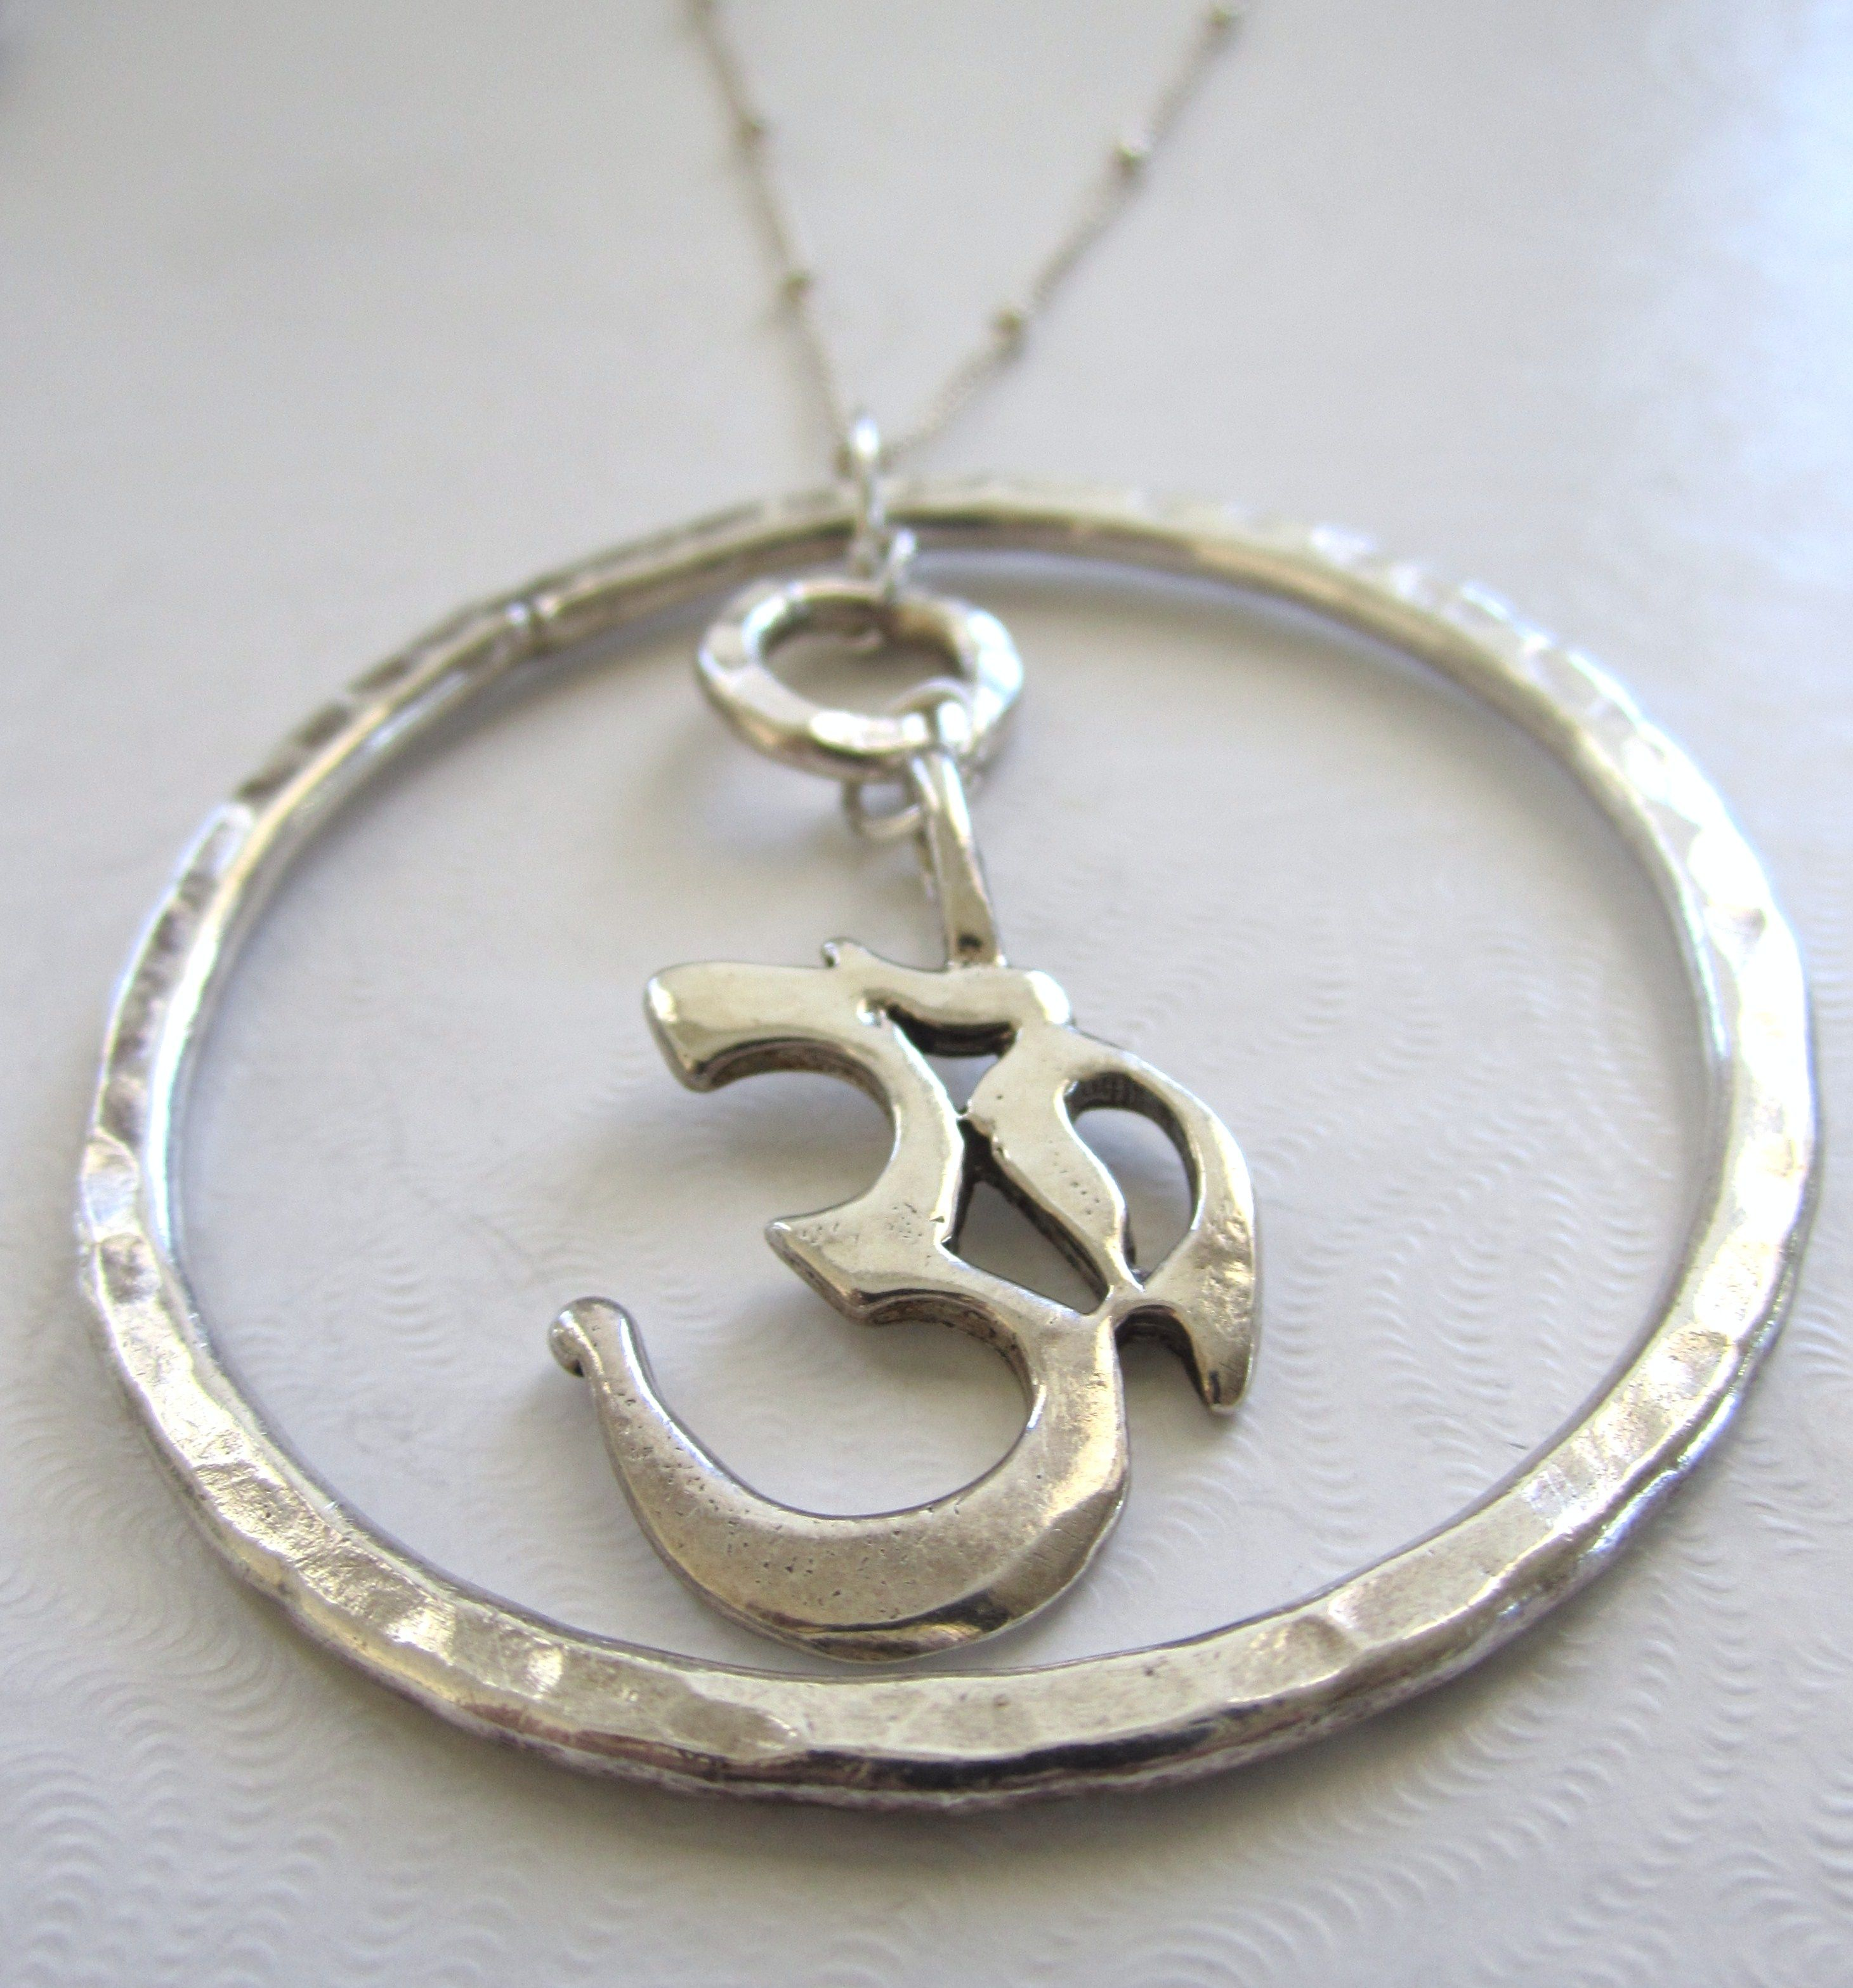 Om necklace from @Faith Marcus Designs